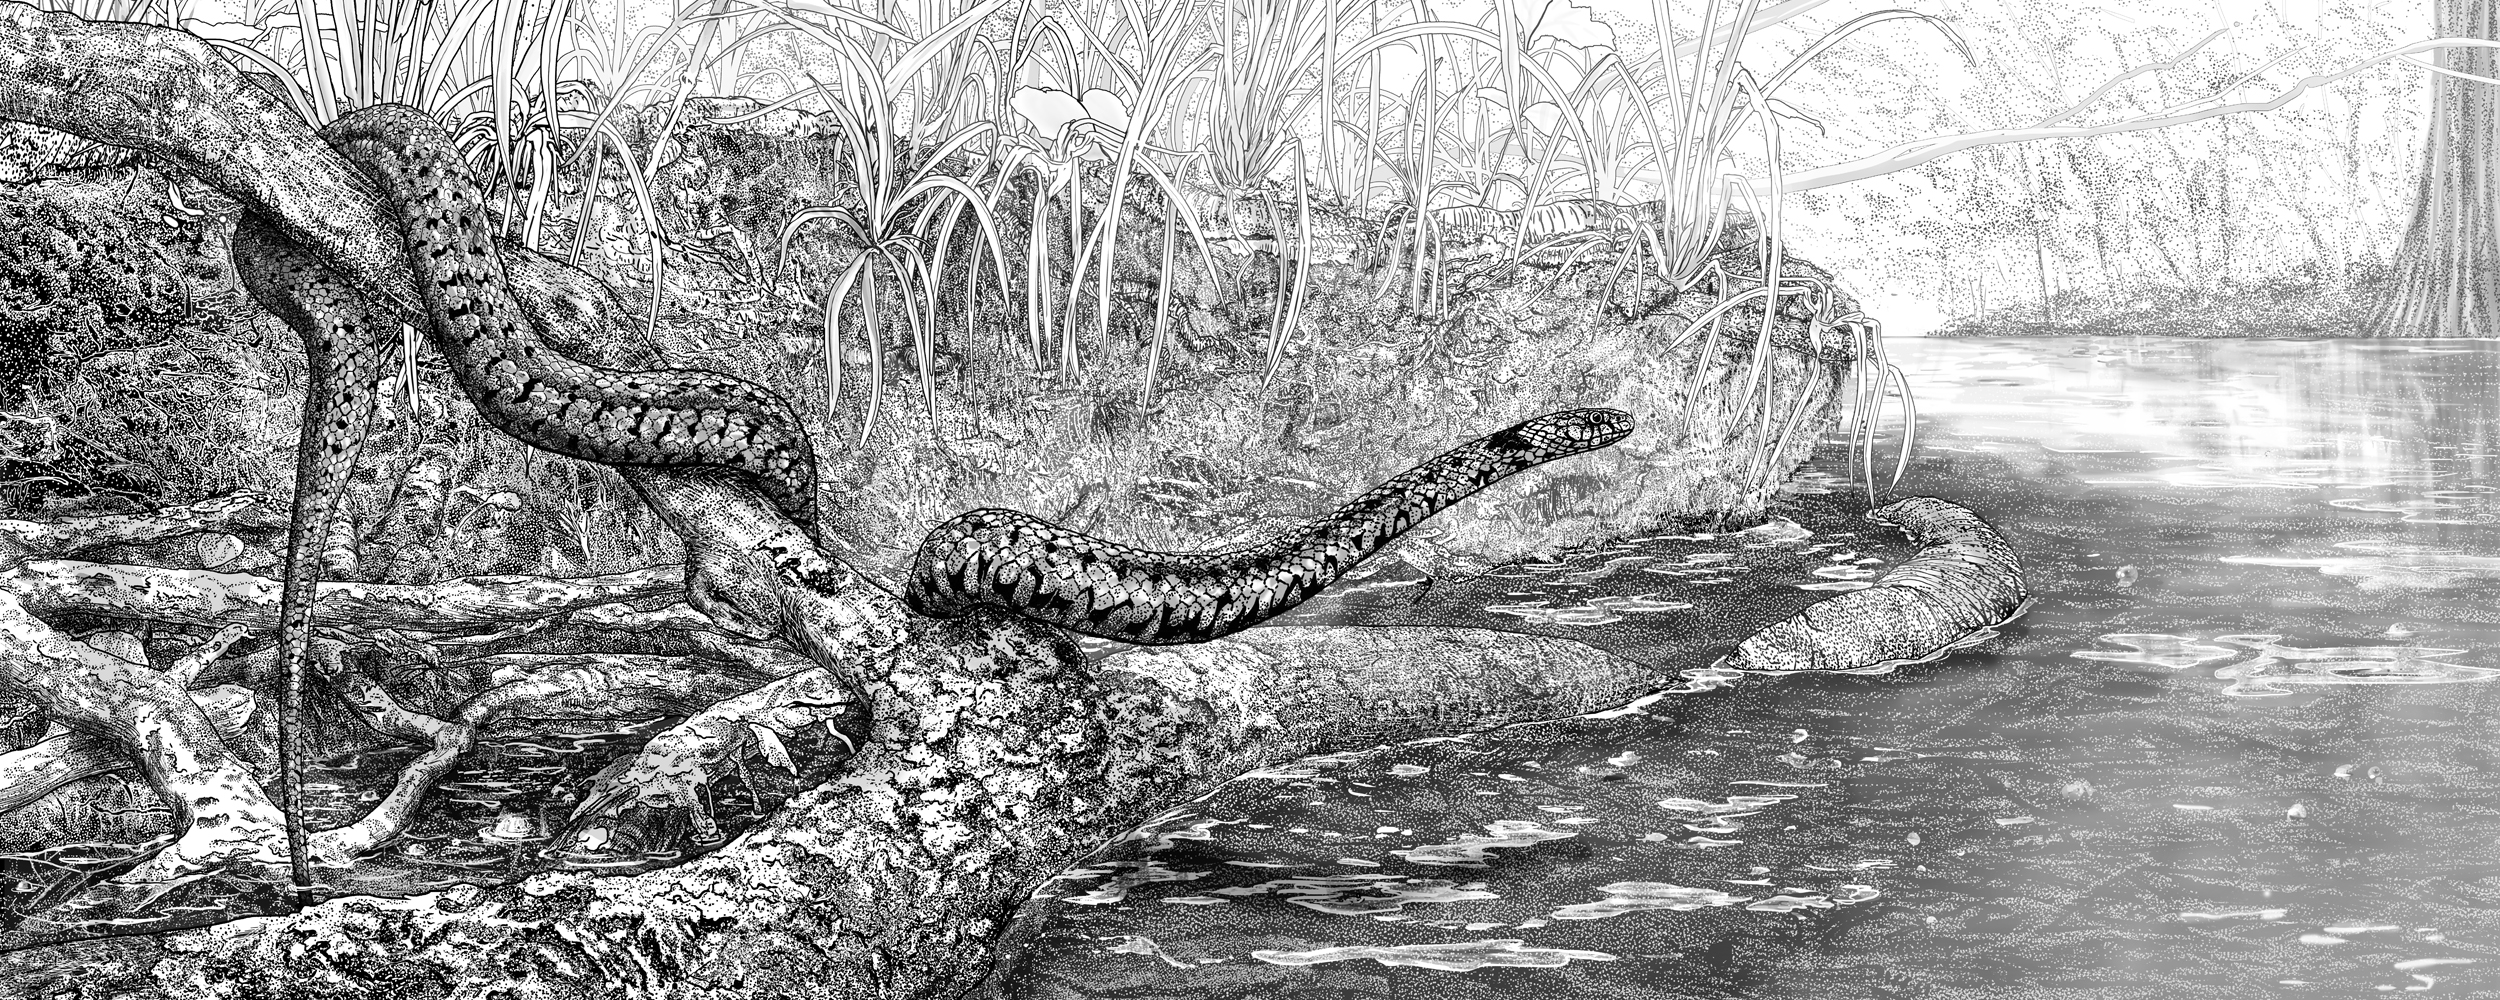 Natural Science Illustration   A collection of traditional pen & ink illustrations.